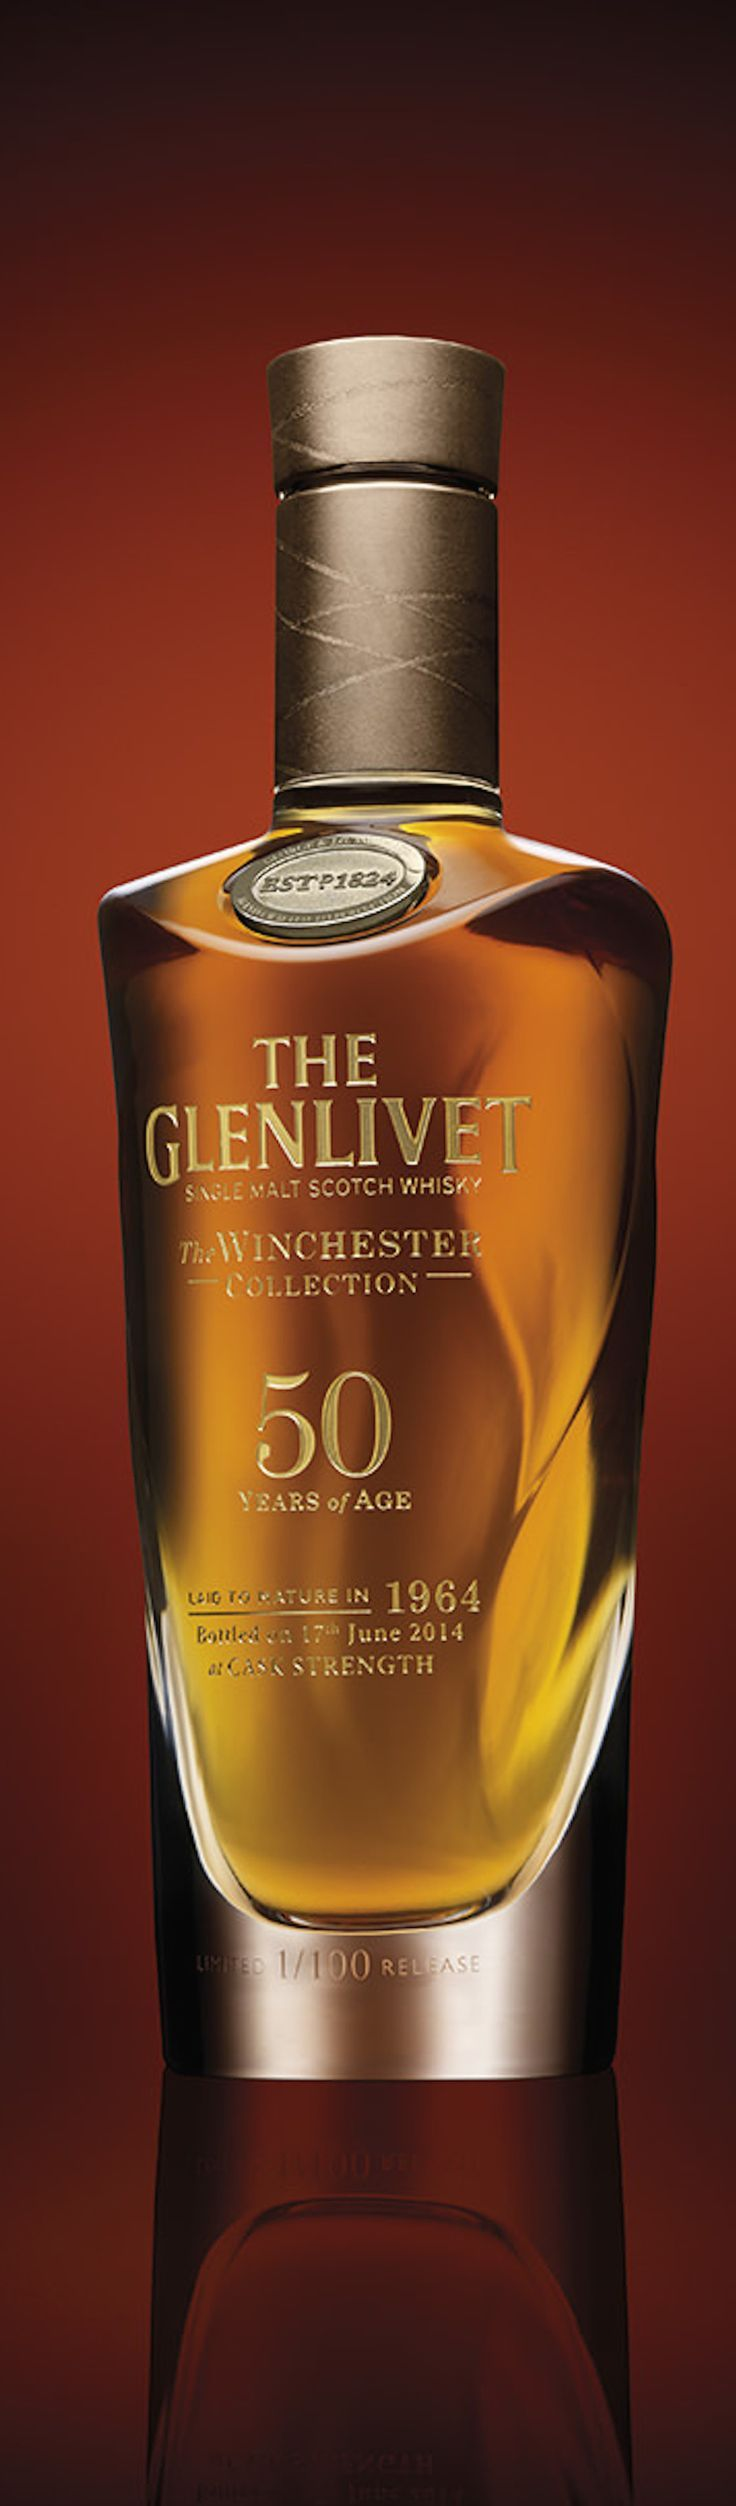 The Glenlivet-Alan winchester-Vintage-collection (£25'000-£18'000)t